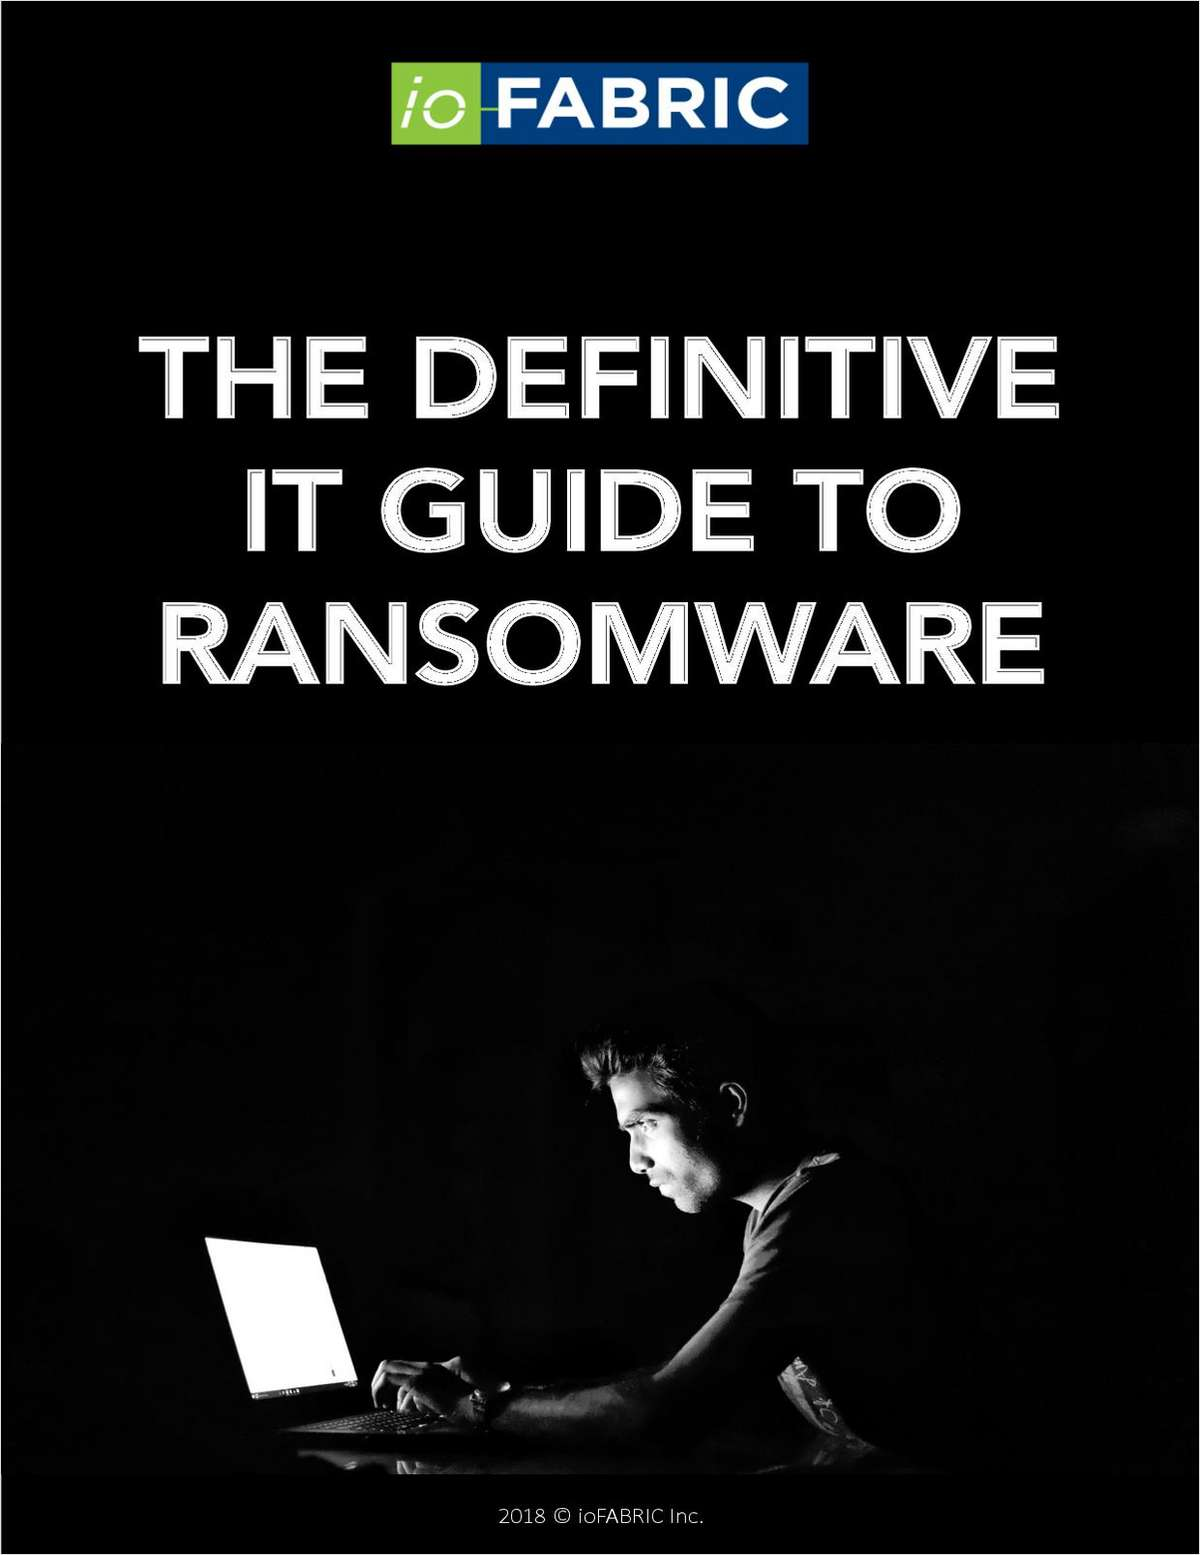 The Definitive IT Guide to Ransomware